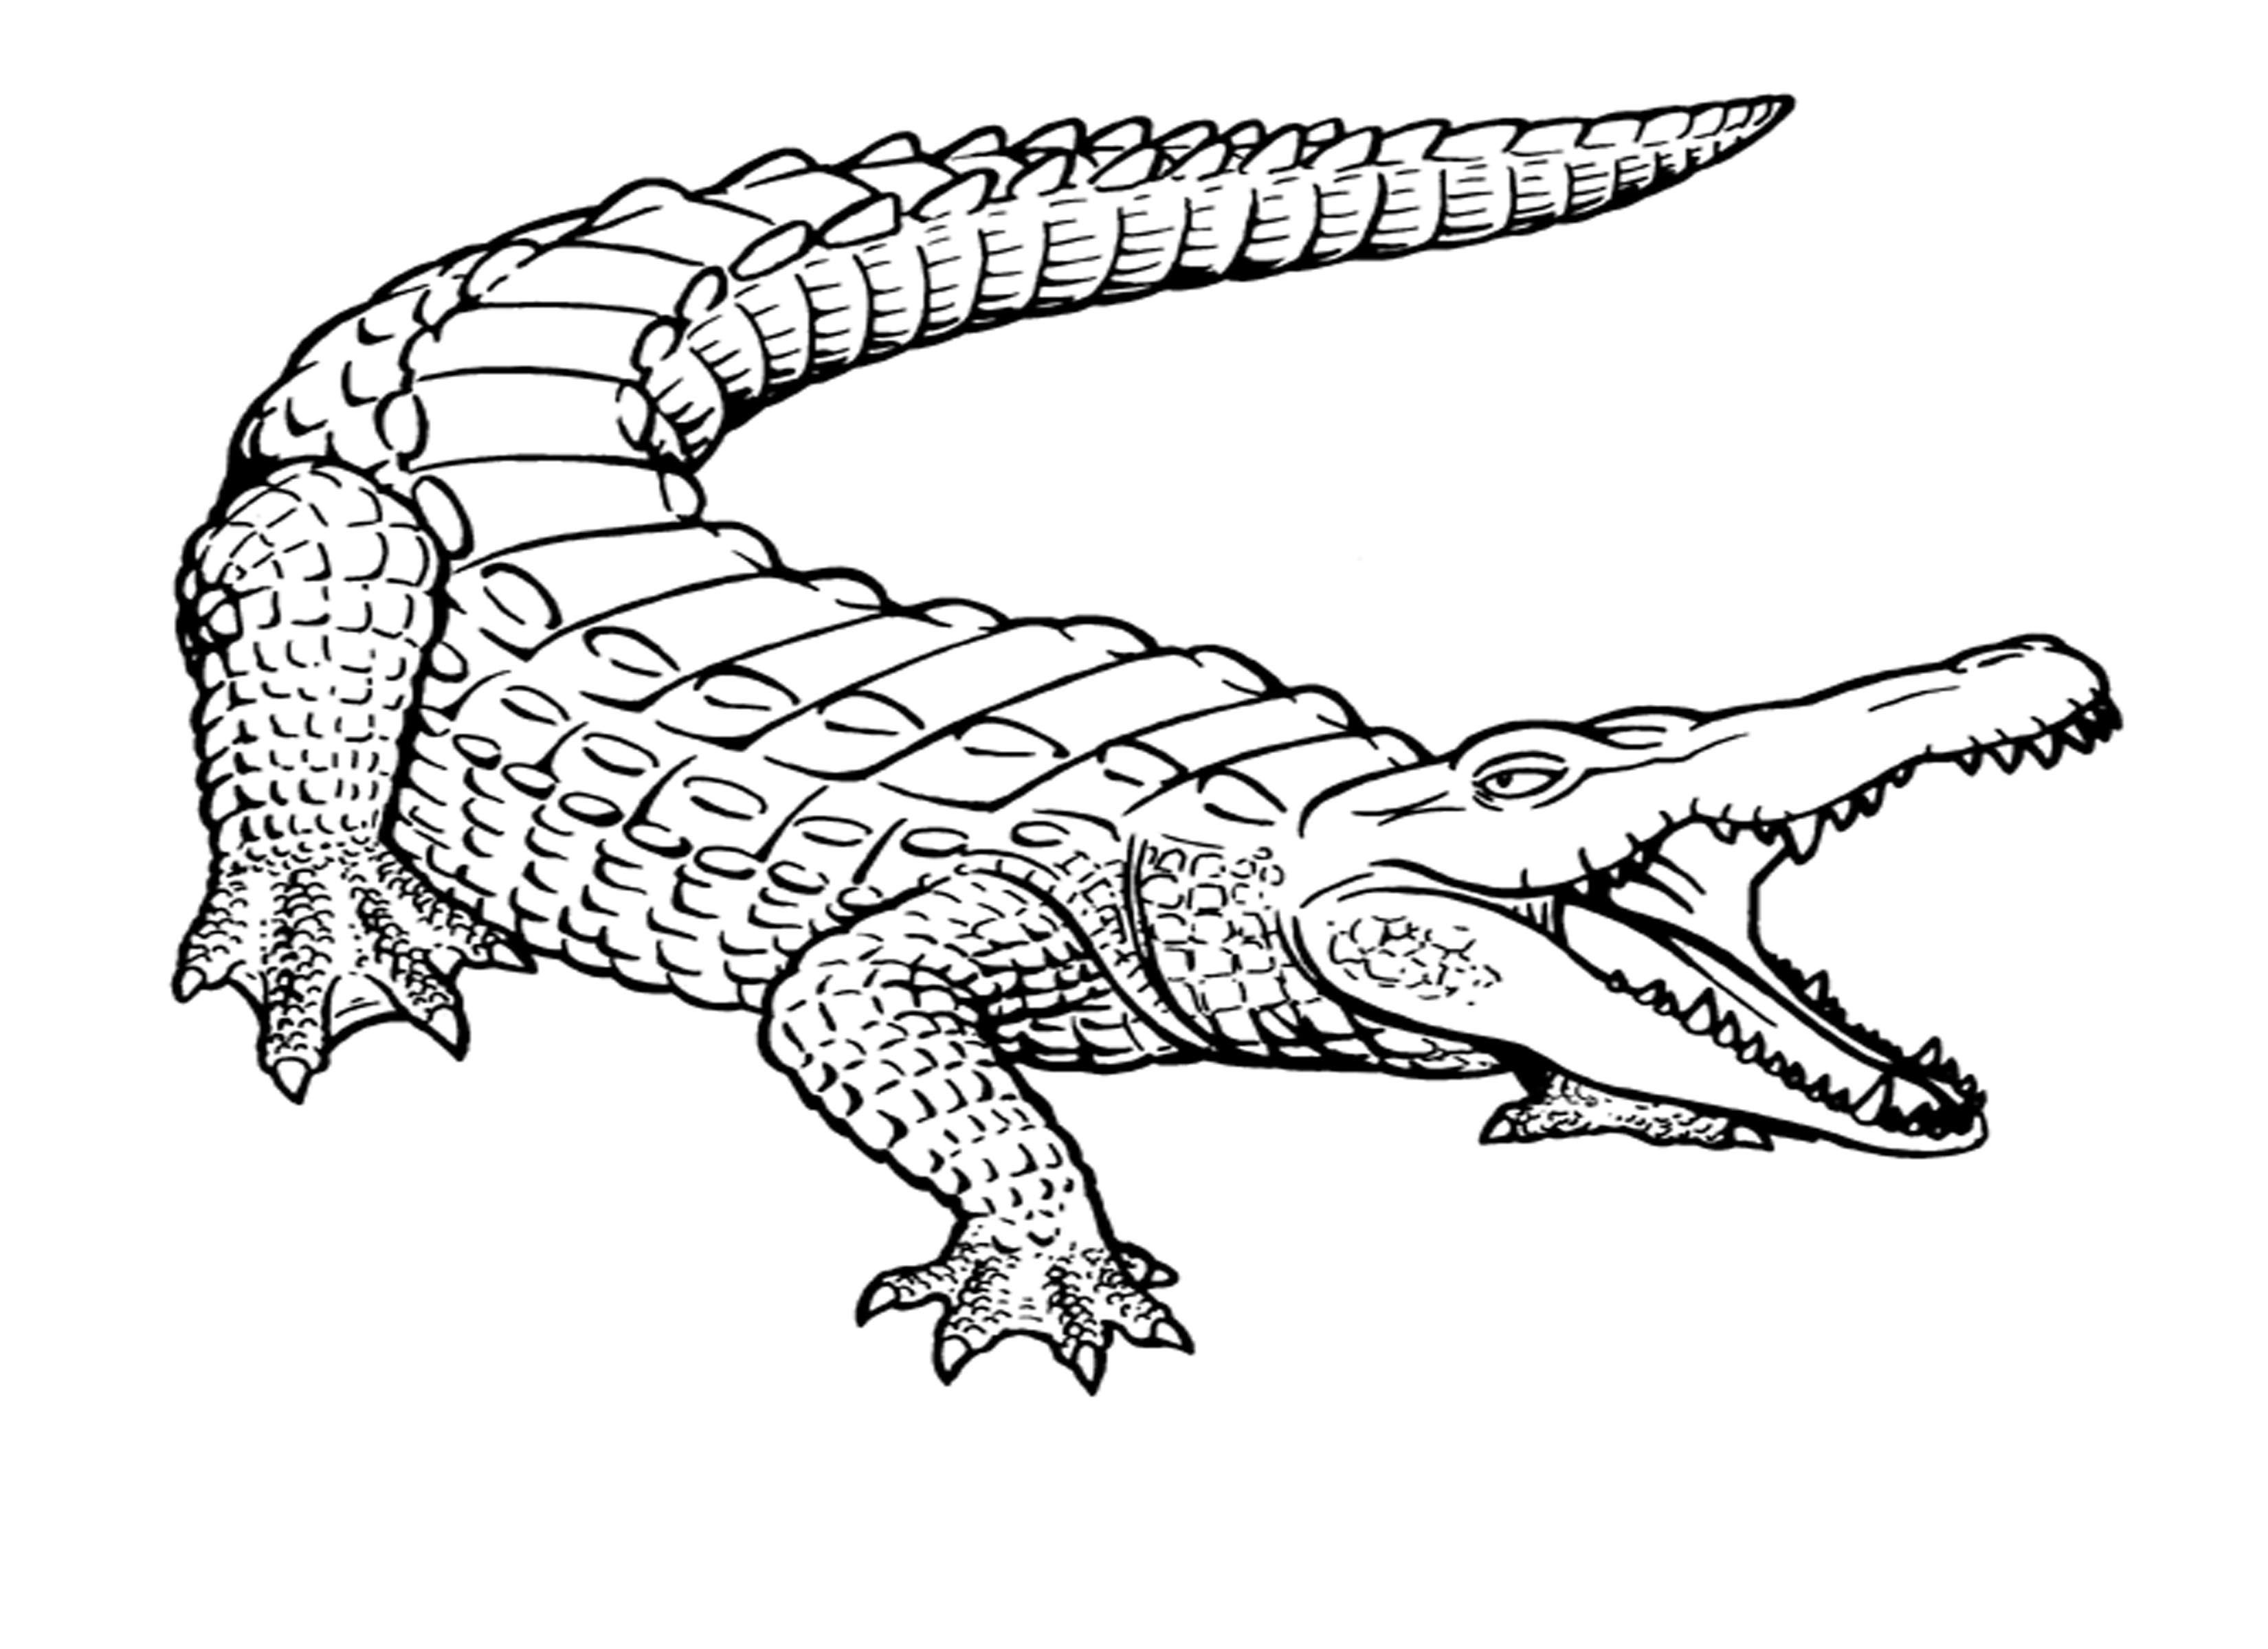 Crocodile Coloring Pages Kids Jpg 3300 2400 Colorful Drawings